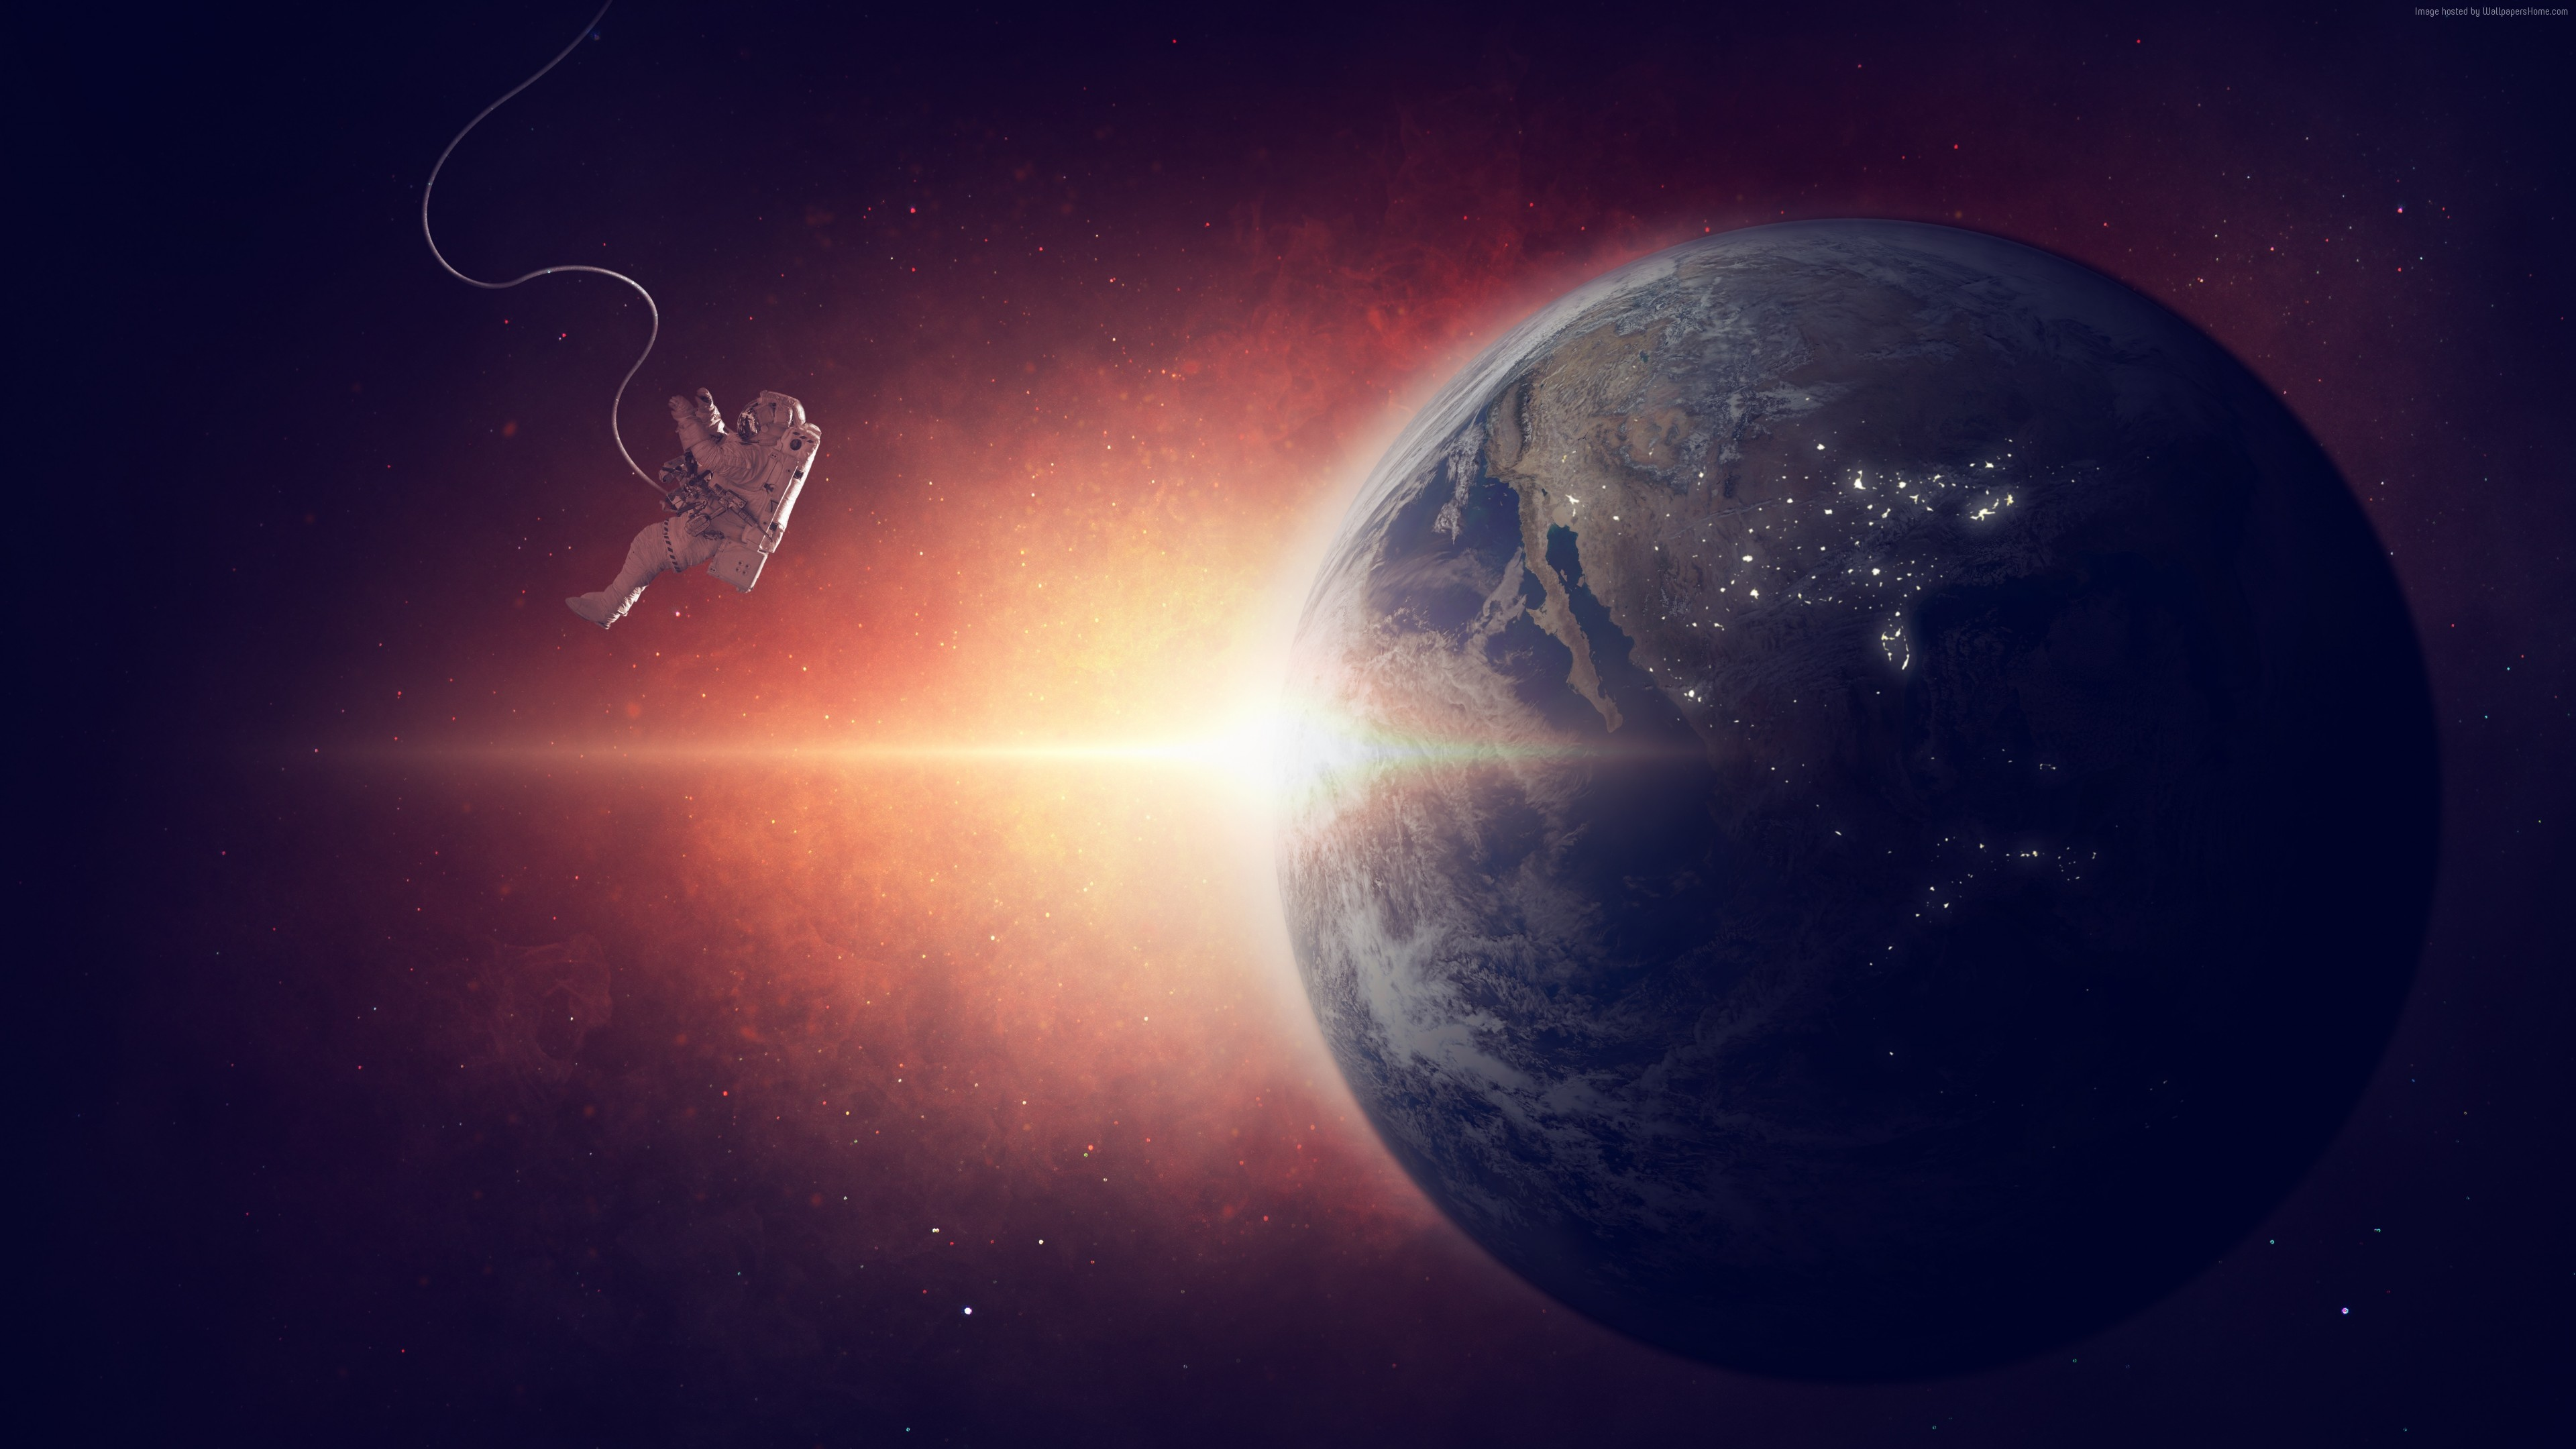 Wallpaper earth, planet, space, galaxy, astronaut, 5k, Space